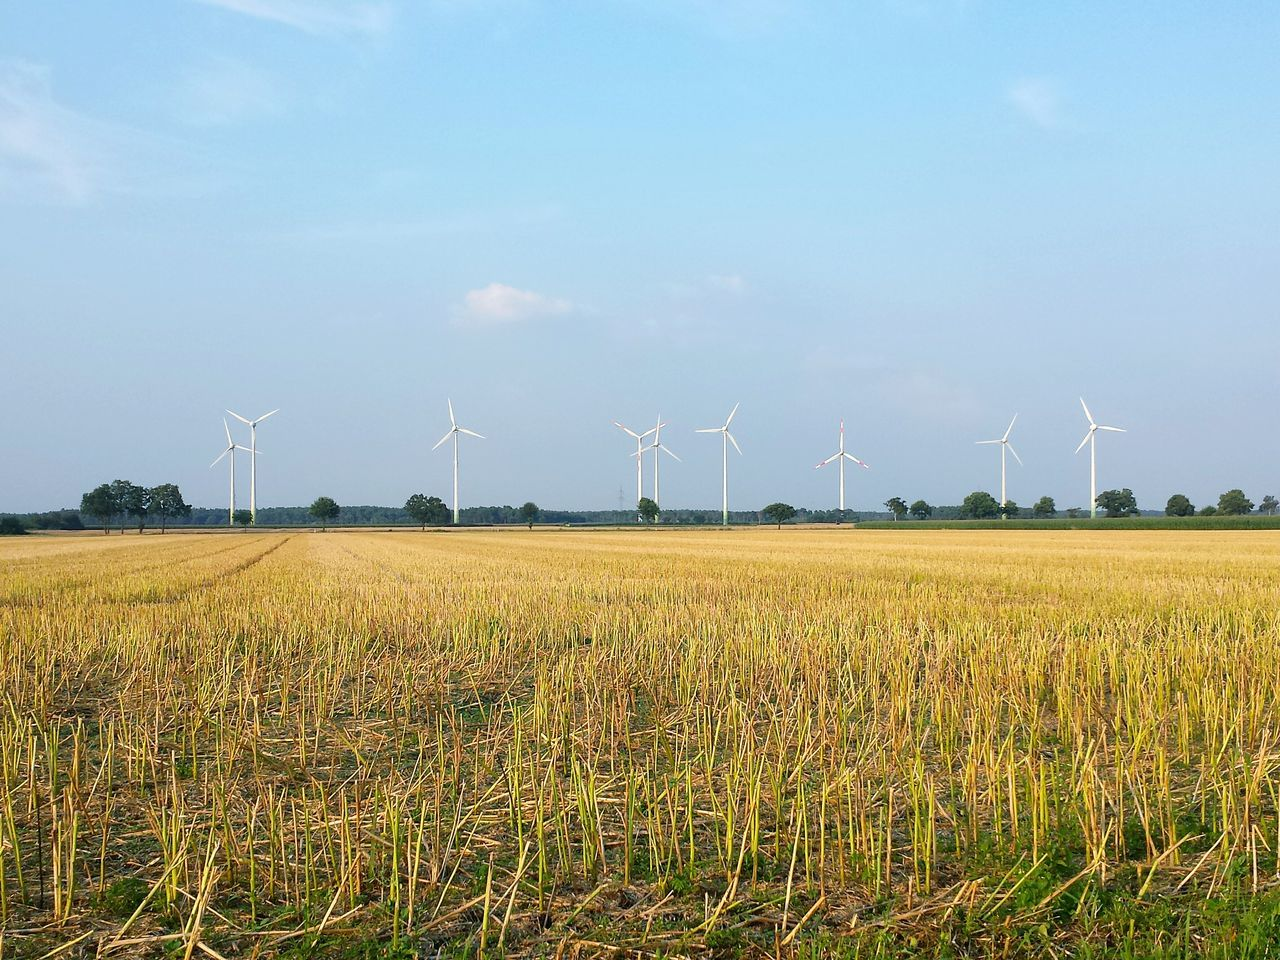 Windräder Abgeerntet Harvested Wind Turbine Wind Power Wind Energy Harvested Field Abgeerntetes Feld Blue Sky Beautiful Combination Showcase July Ladyphotographerofthemonth Pitoresque Hello World Beautiful View Weite Flachland Flat Landscape Stoppelfeld